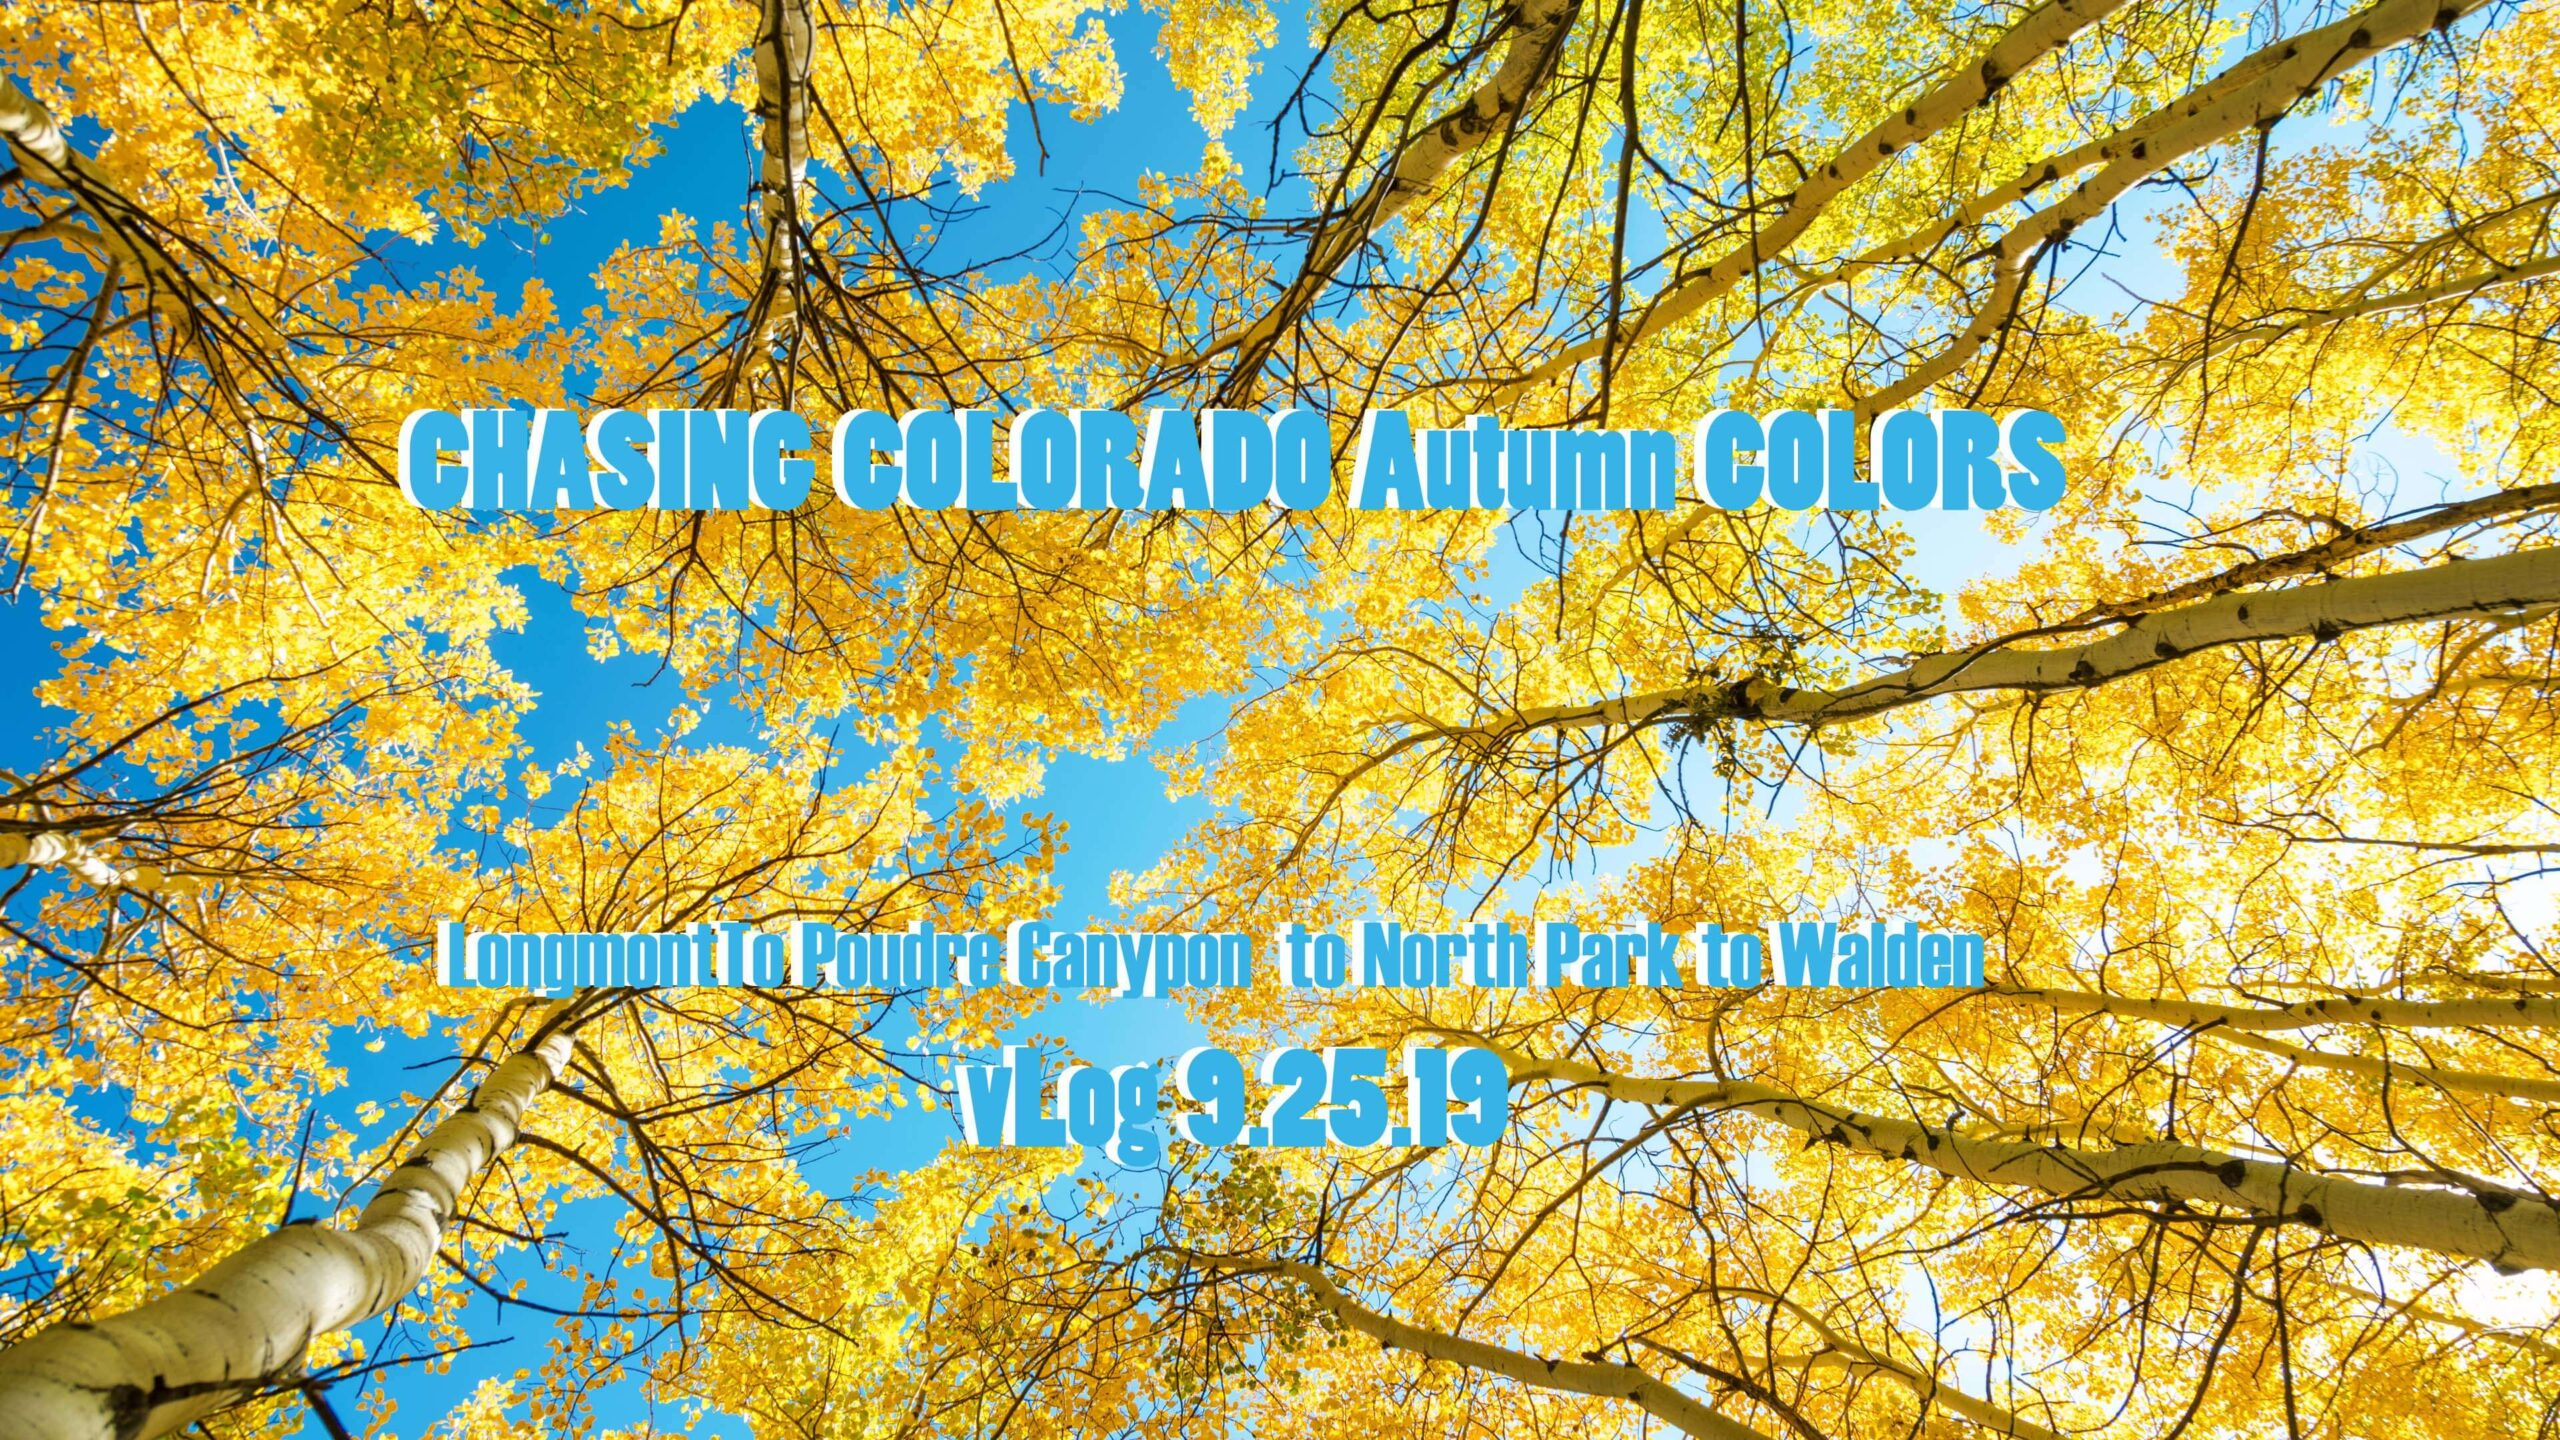 CHASING COLORADO Autumn COLORS vLog and NEW Prints